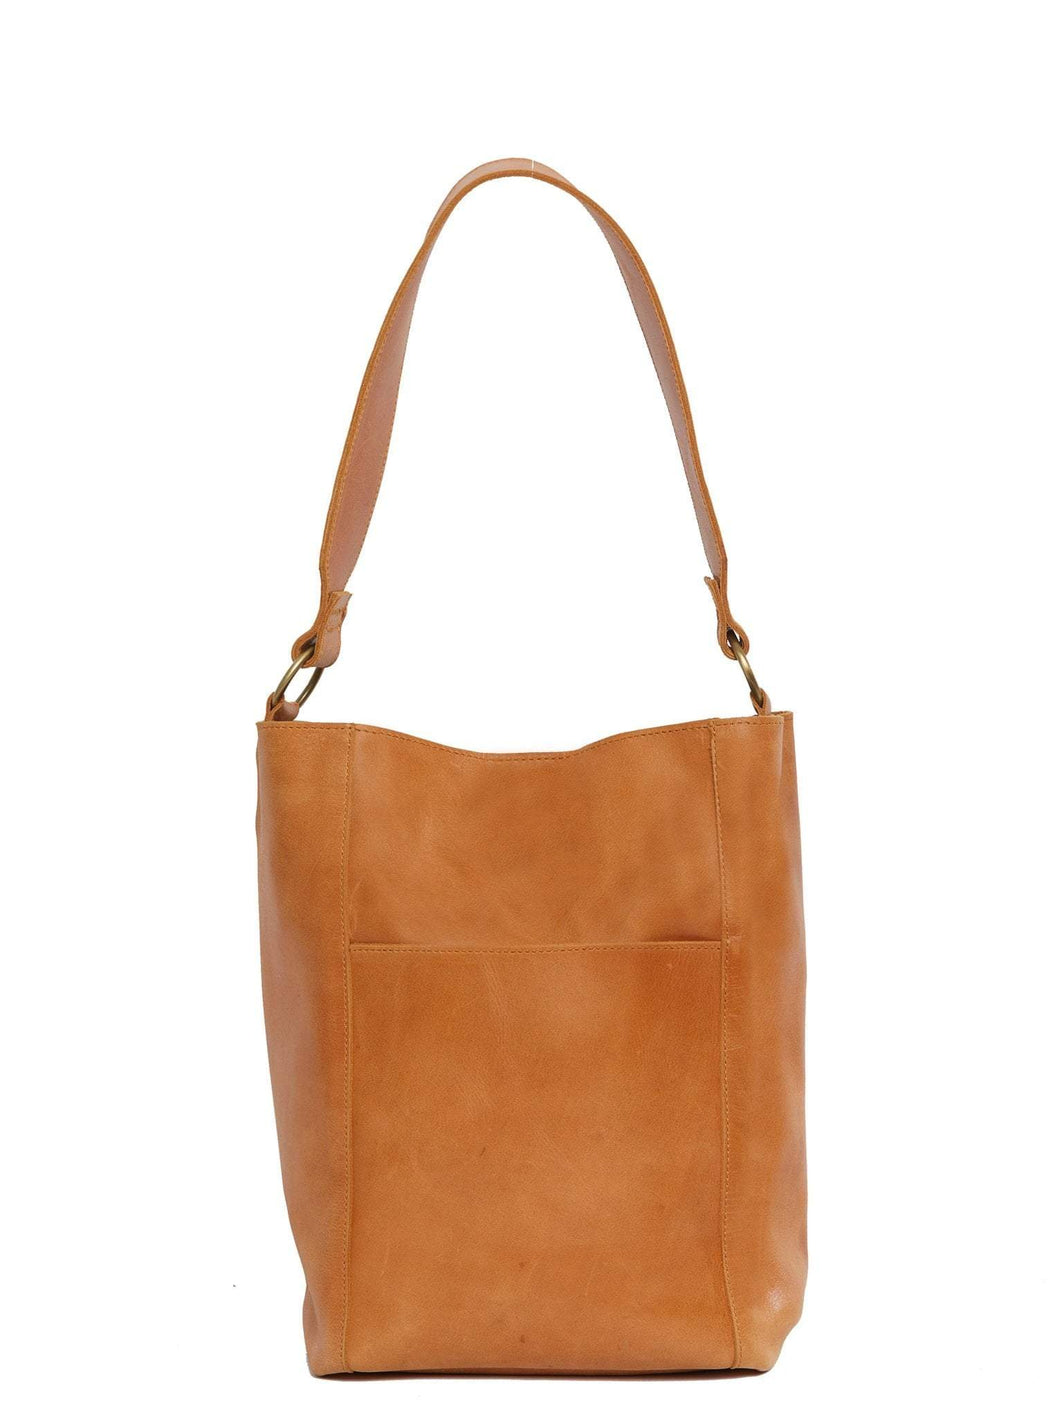 The Mihiret Bucket Bag in Cognac by ABLE